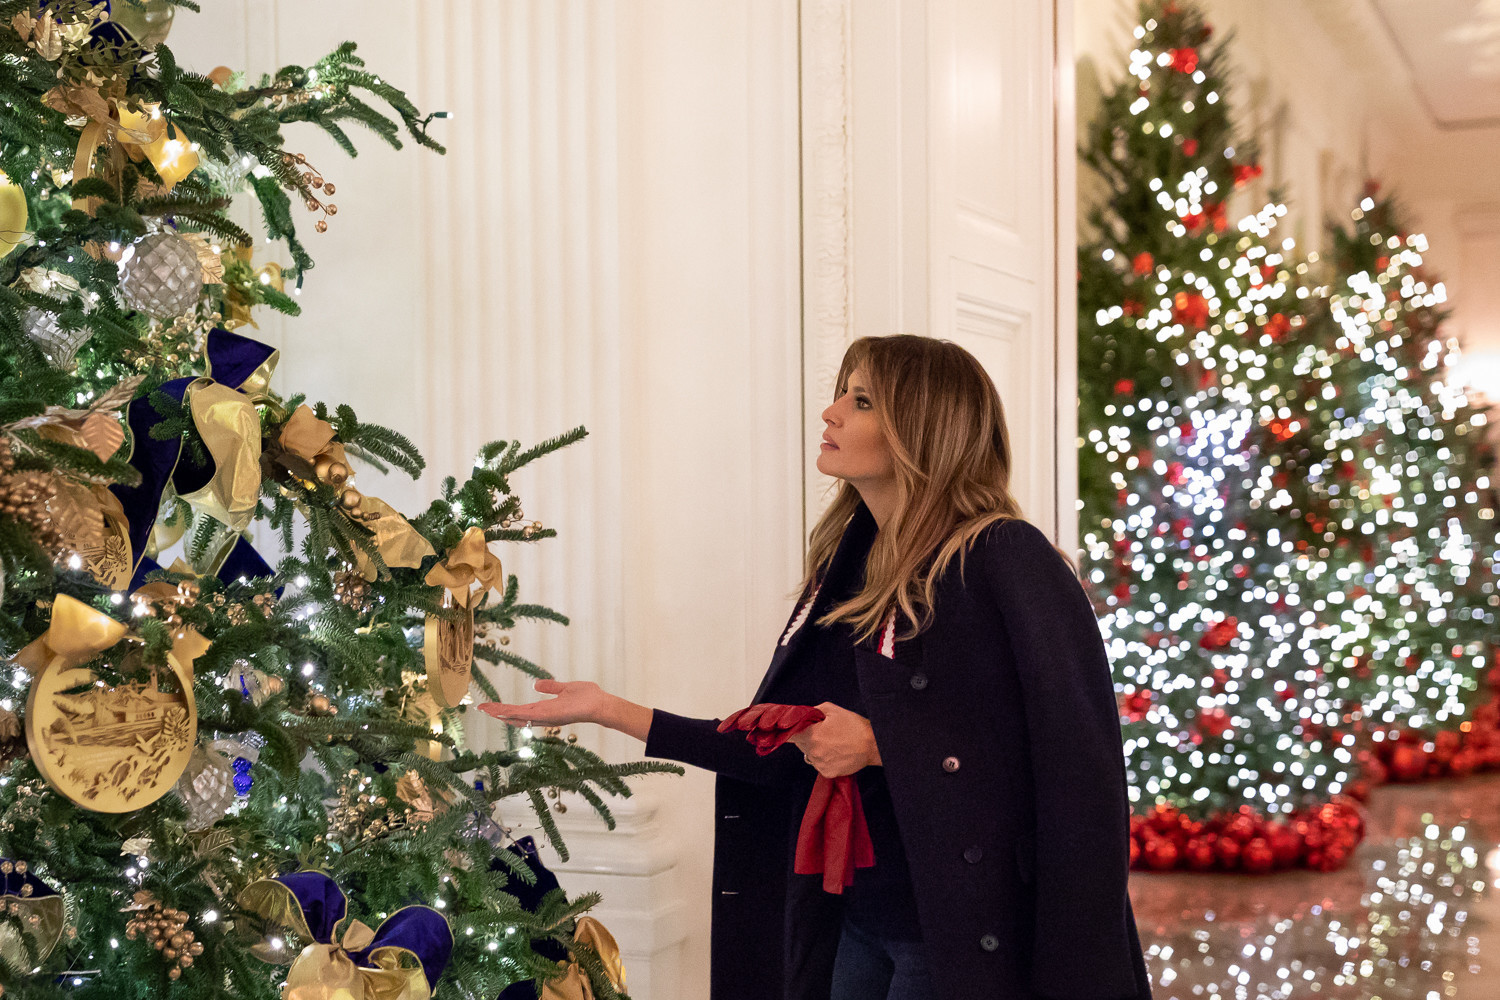 white house holiday decorations baltimore sun